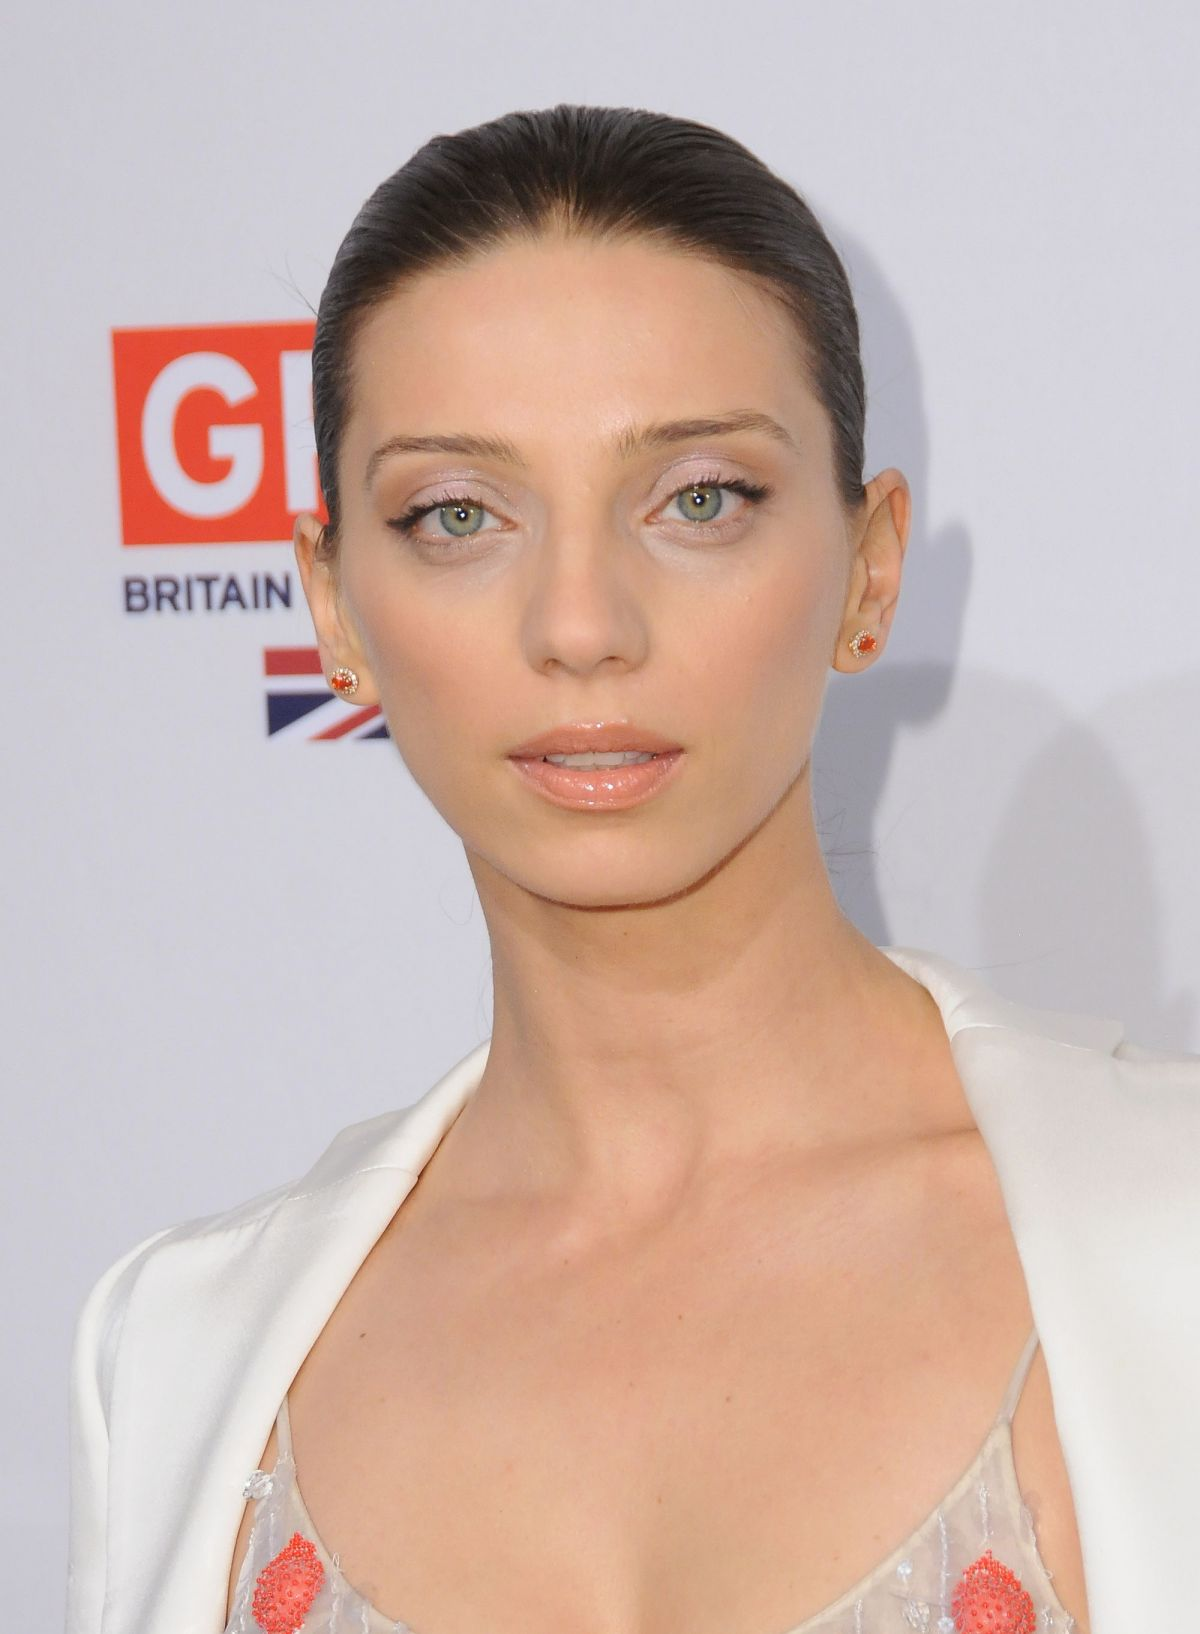 Angela Sarafyan nudes (19 photos), Tits, Leaked, Twitter, butt 2018